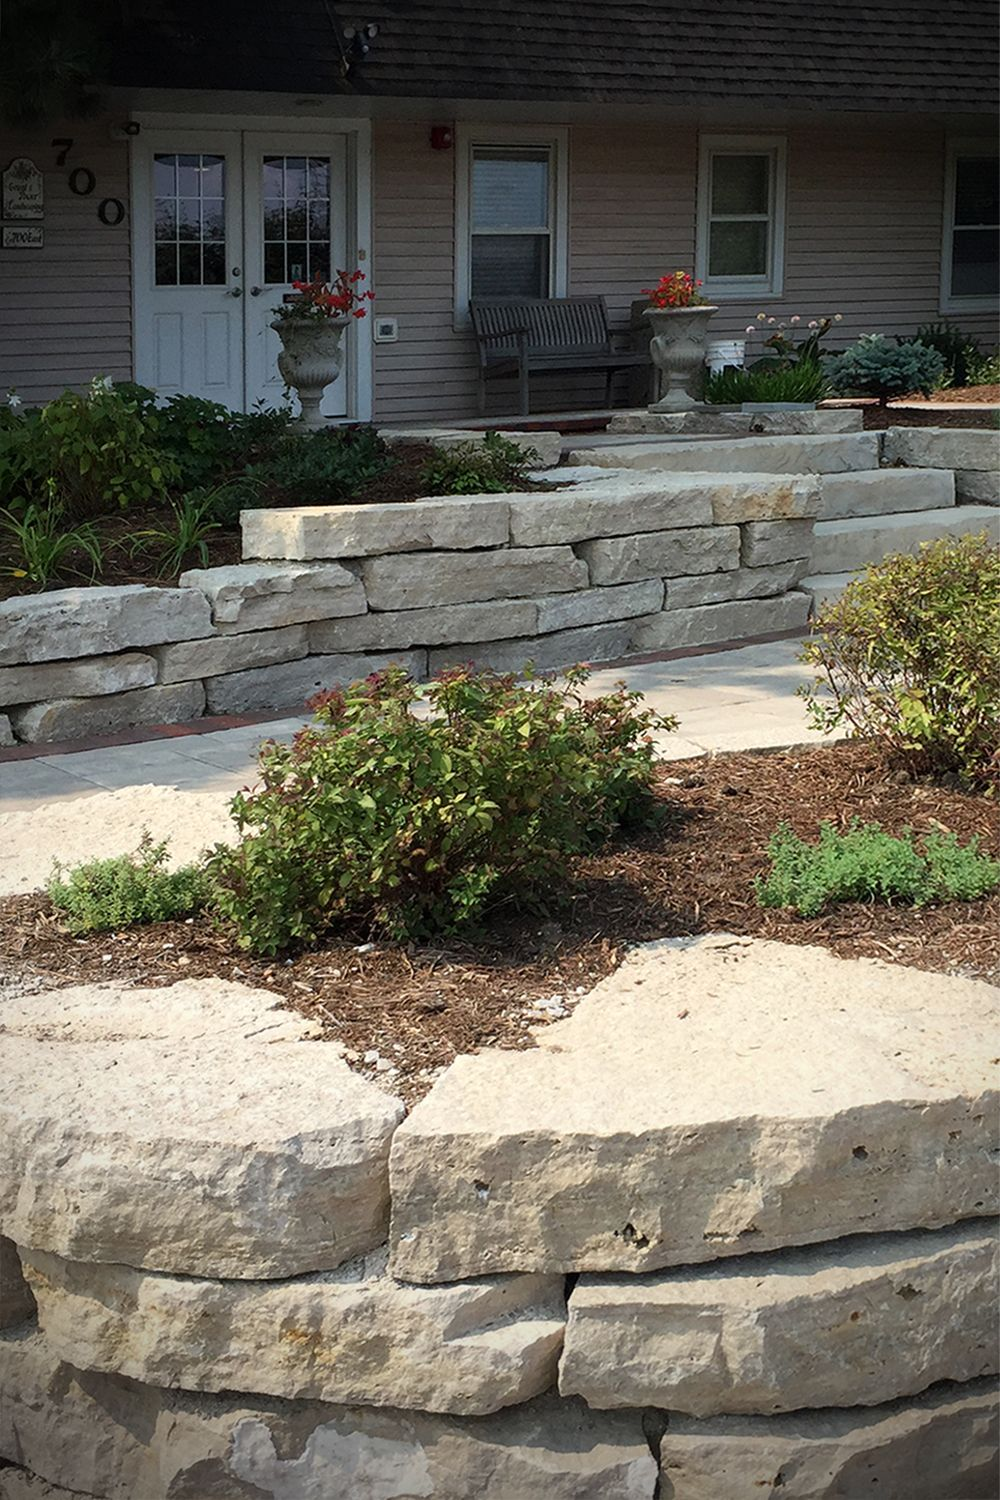 Home Landscape Retaining Wall Stone Design Fond Du Lac Outcroppings Backyard Landscaping Front Yard Landscaping Backyard